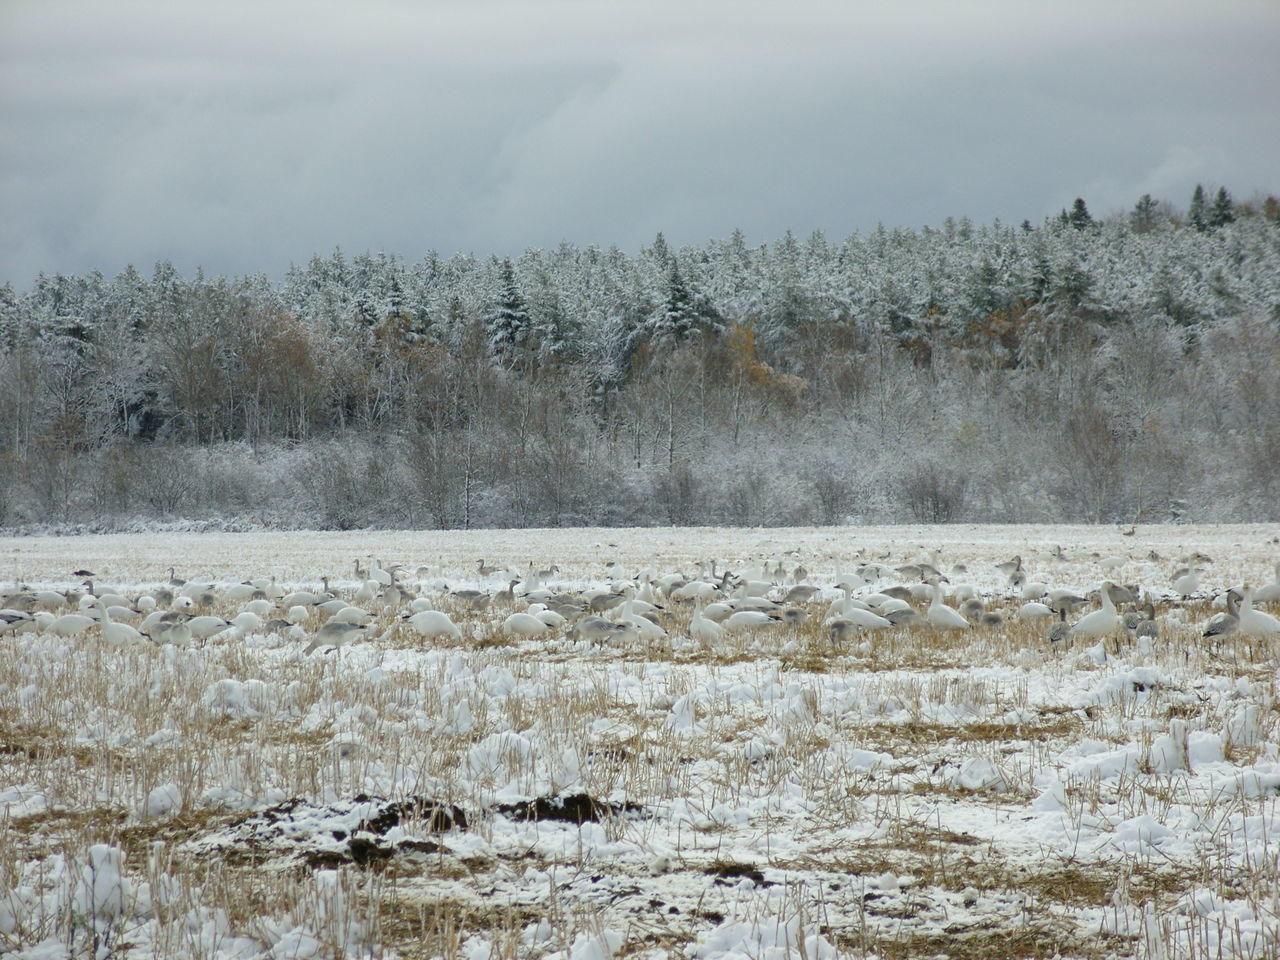 Bare Tree Beauty In Nature Cold Cold Temperature Day Frost Frozen Frozen Lake Ice Lake Long Goodbye Nature No People Outdoors Saguenay, Québec, Canada Scenics Sky Snow Tranquil Scene Tranquility Tree Weather White Gooses Winter EyeEmNewHere The Great Outdoors - 2017 EyeEm Awards